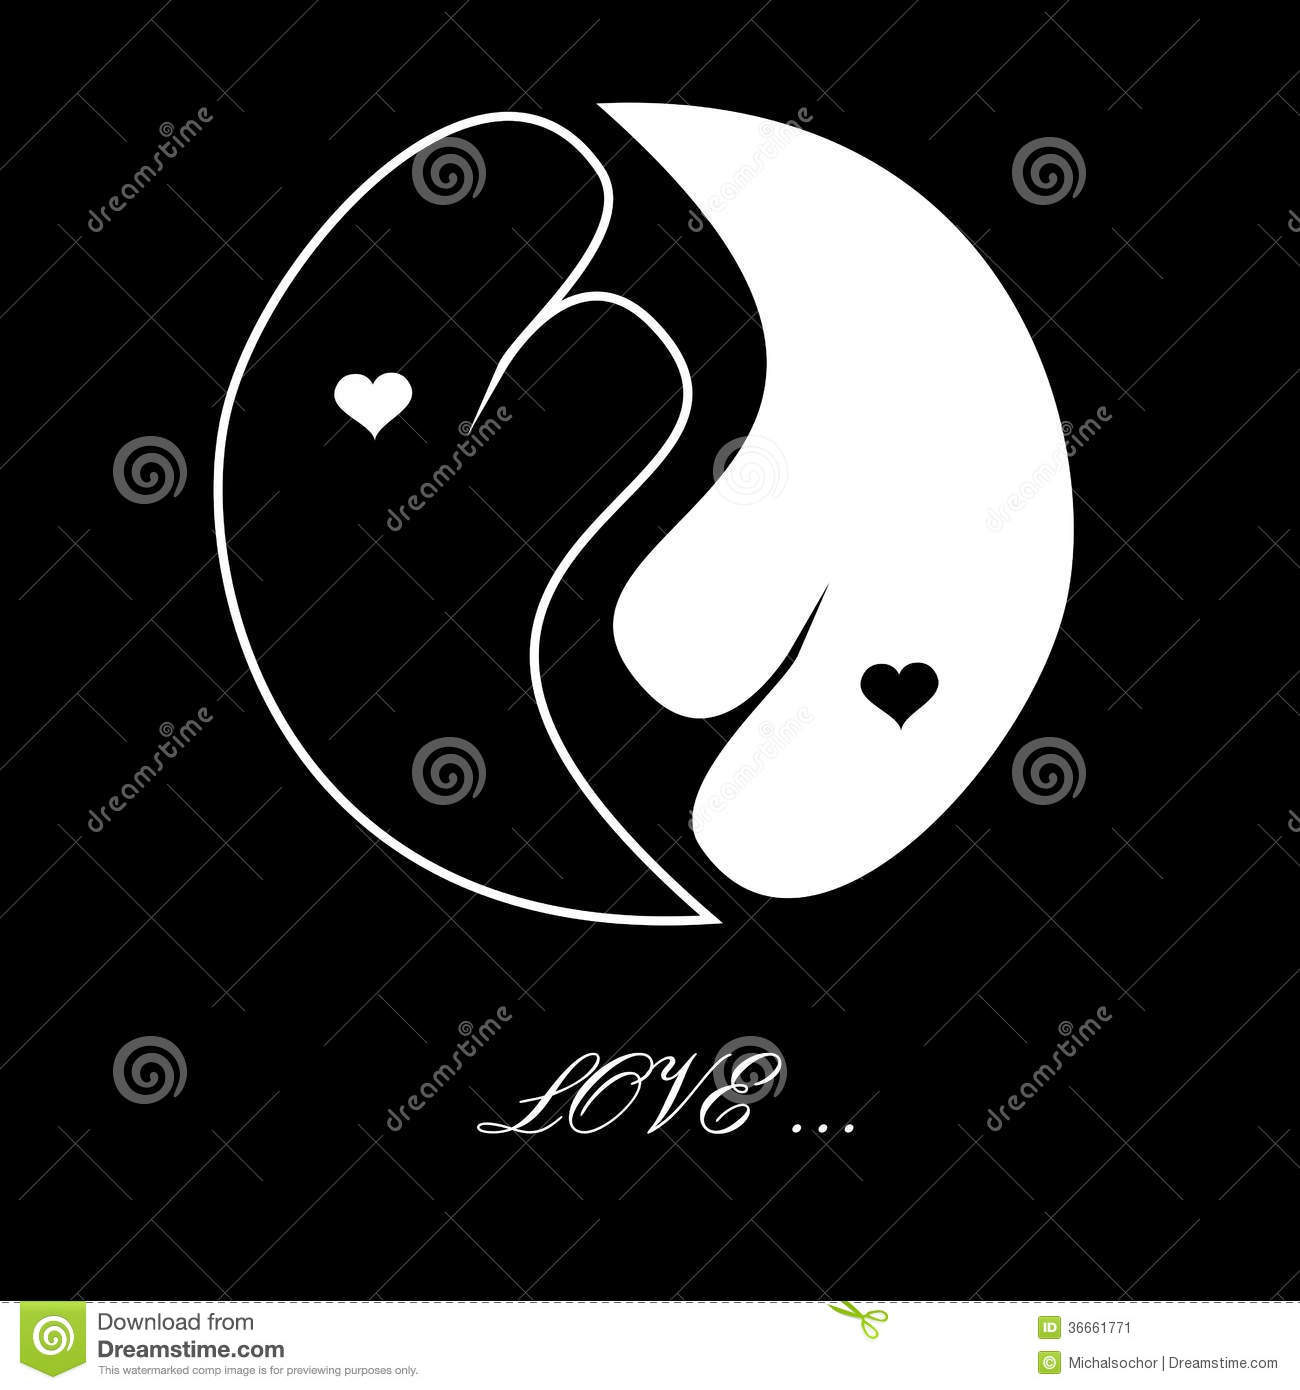 Heart Valentines Day Card Black And White Image Image – Black and White Valentines Day Cards